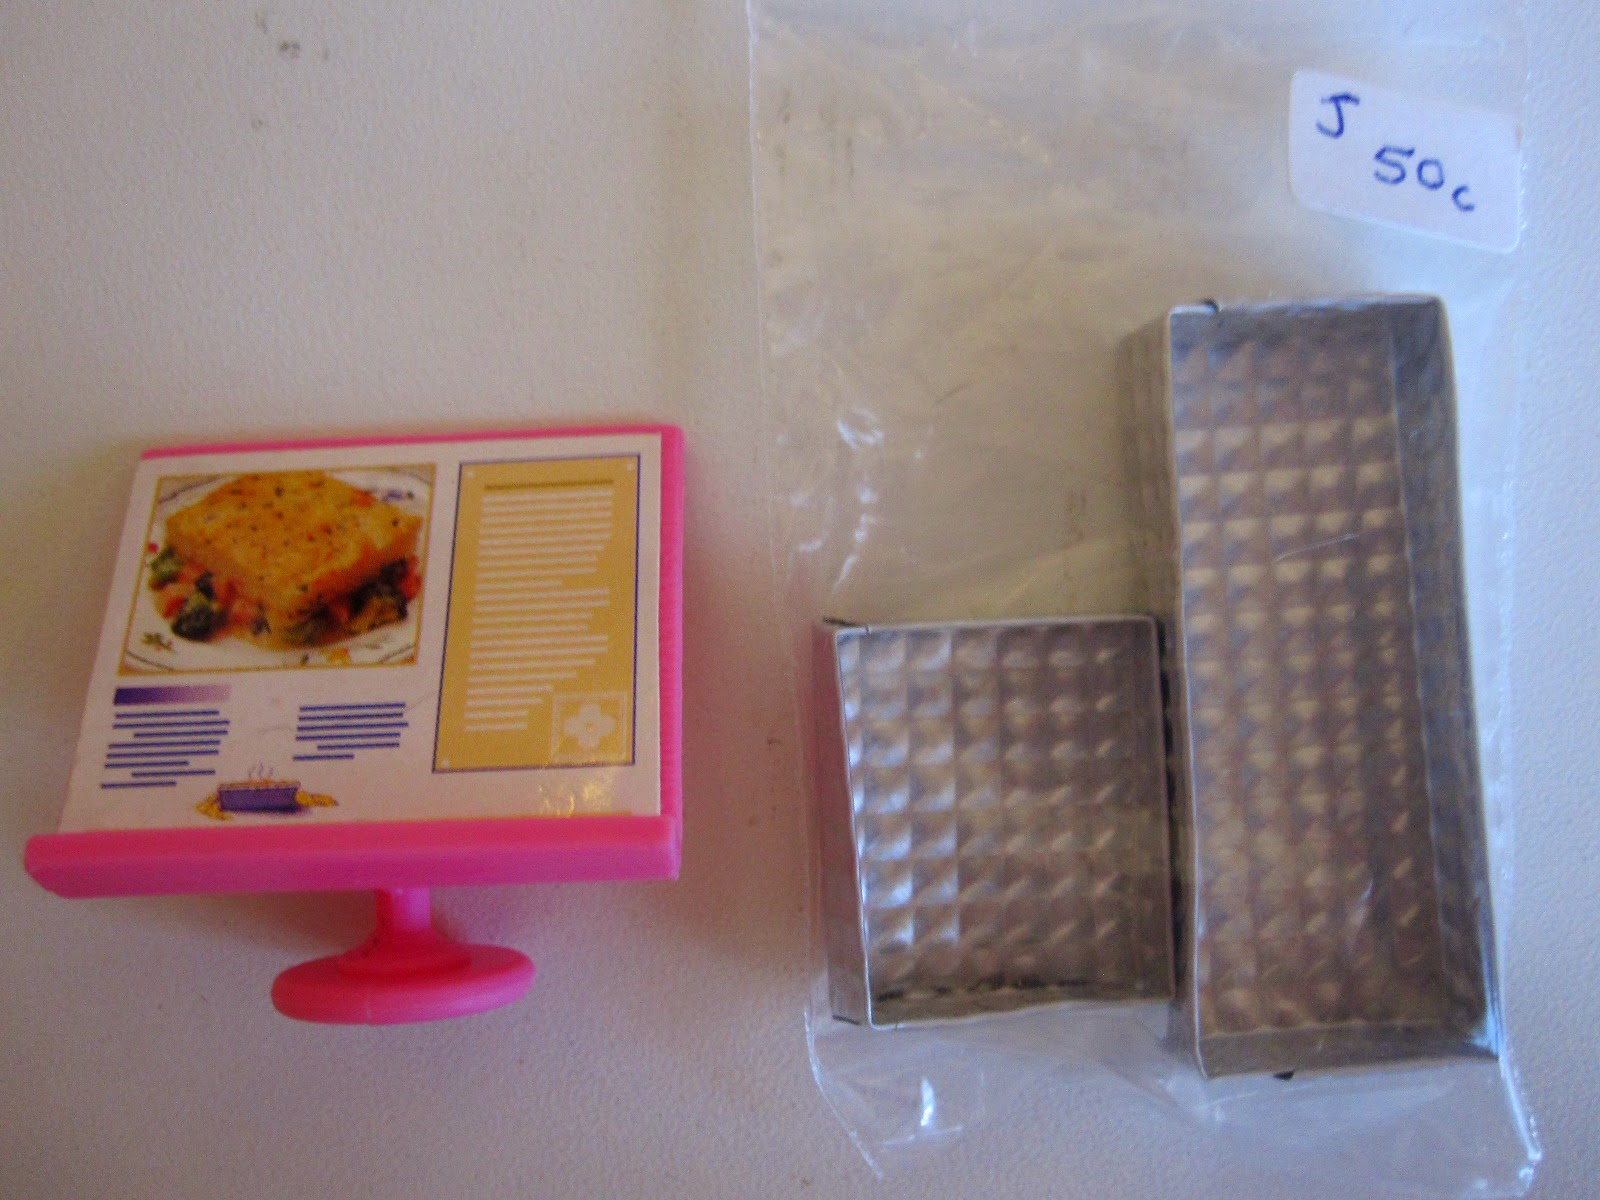 Pink plastic miniature menu board and bag containing two silver-coloured miniature trays. Bag is marked 'J 50c'